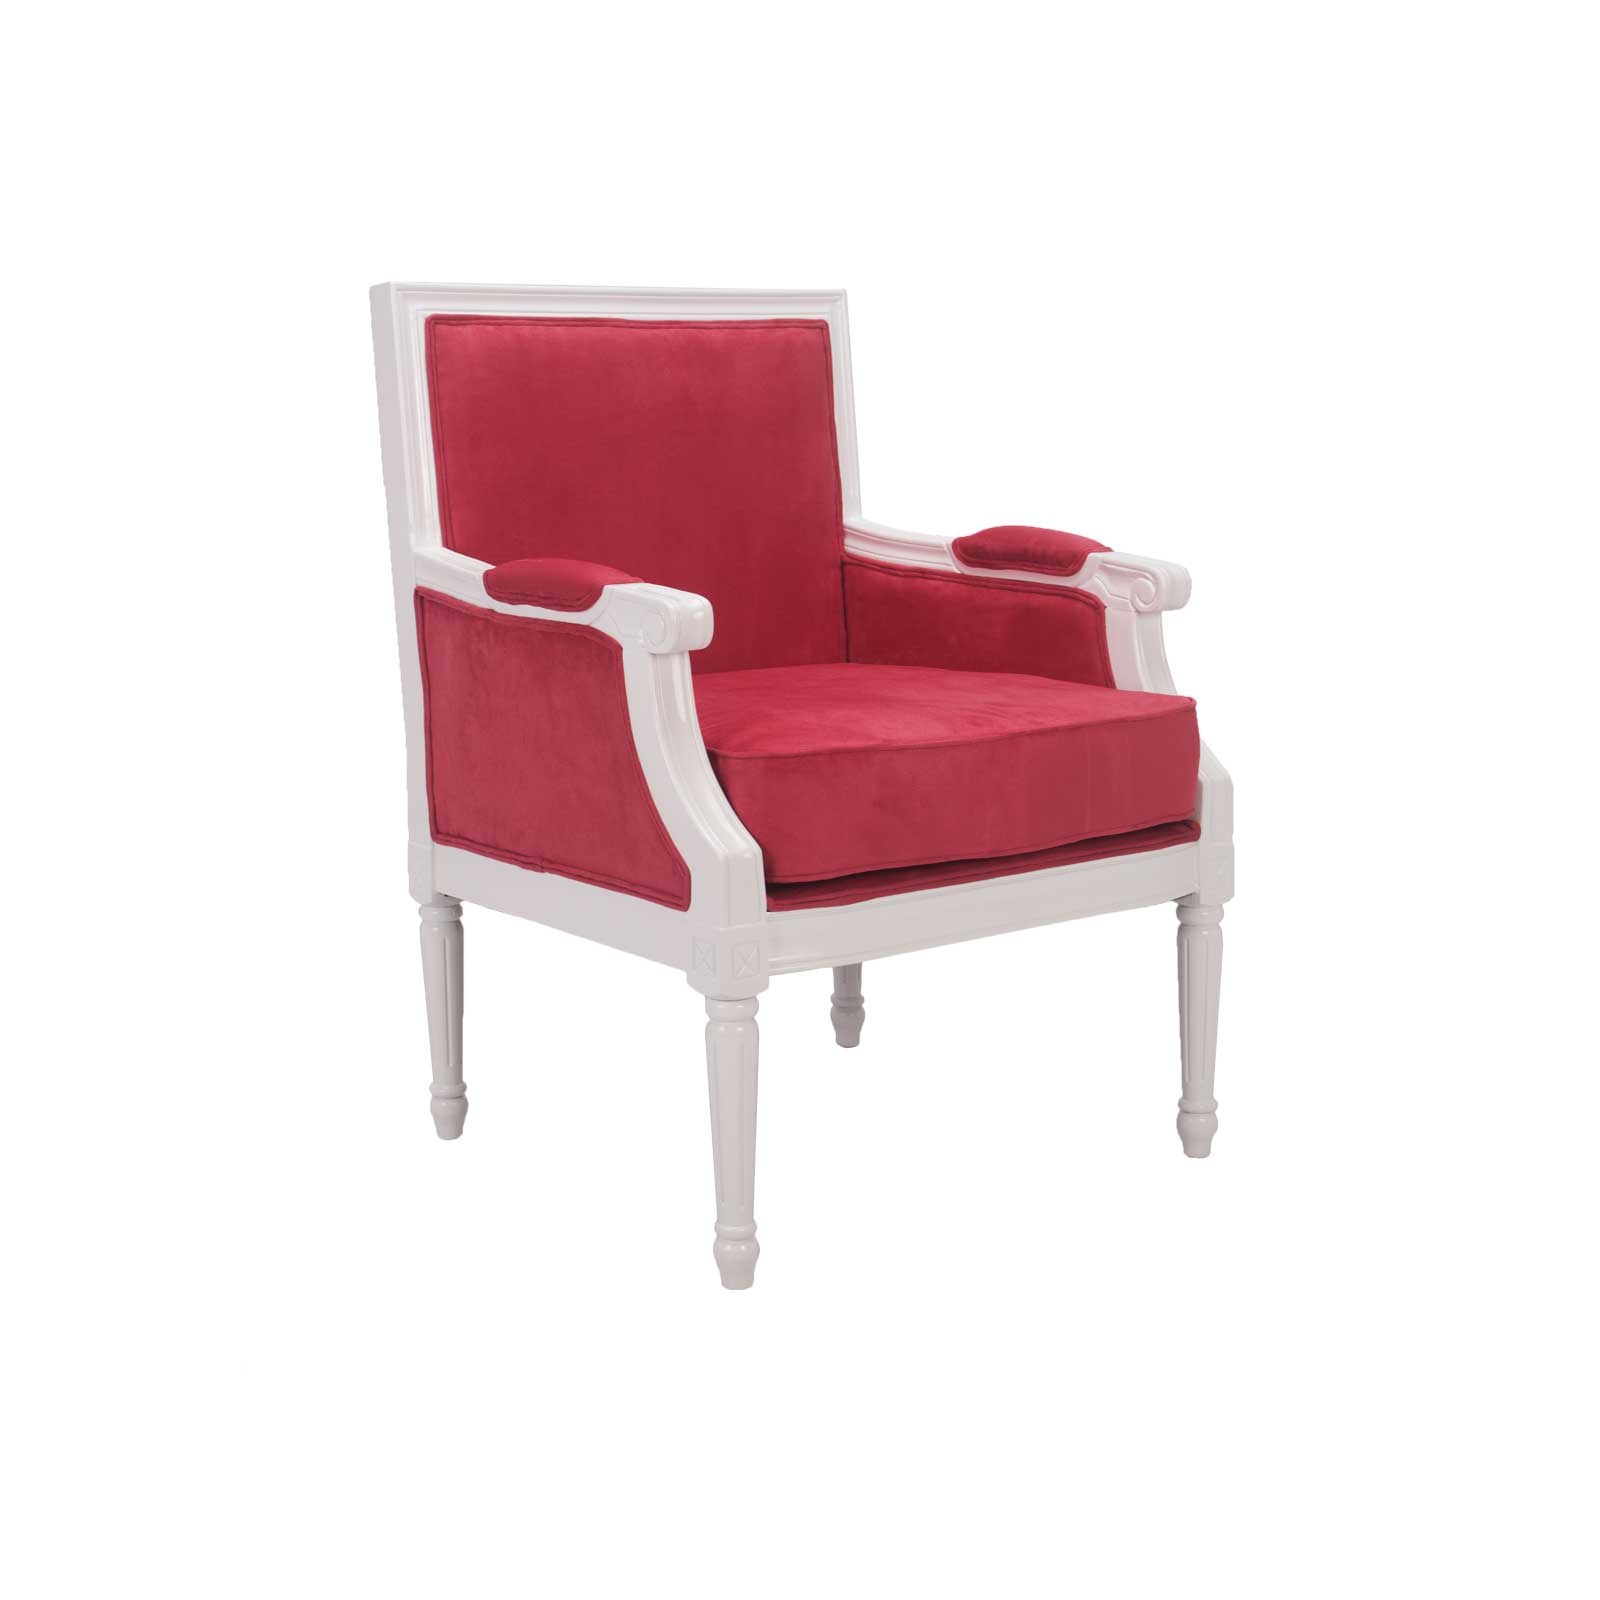 Louie VL Lounge Chair Pink FormDecor